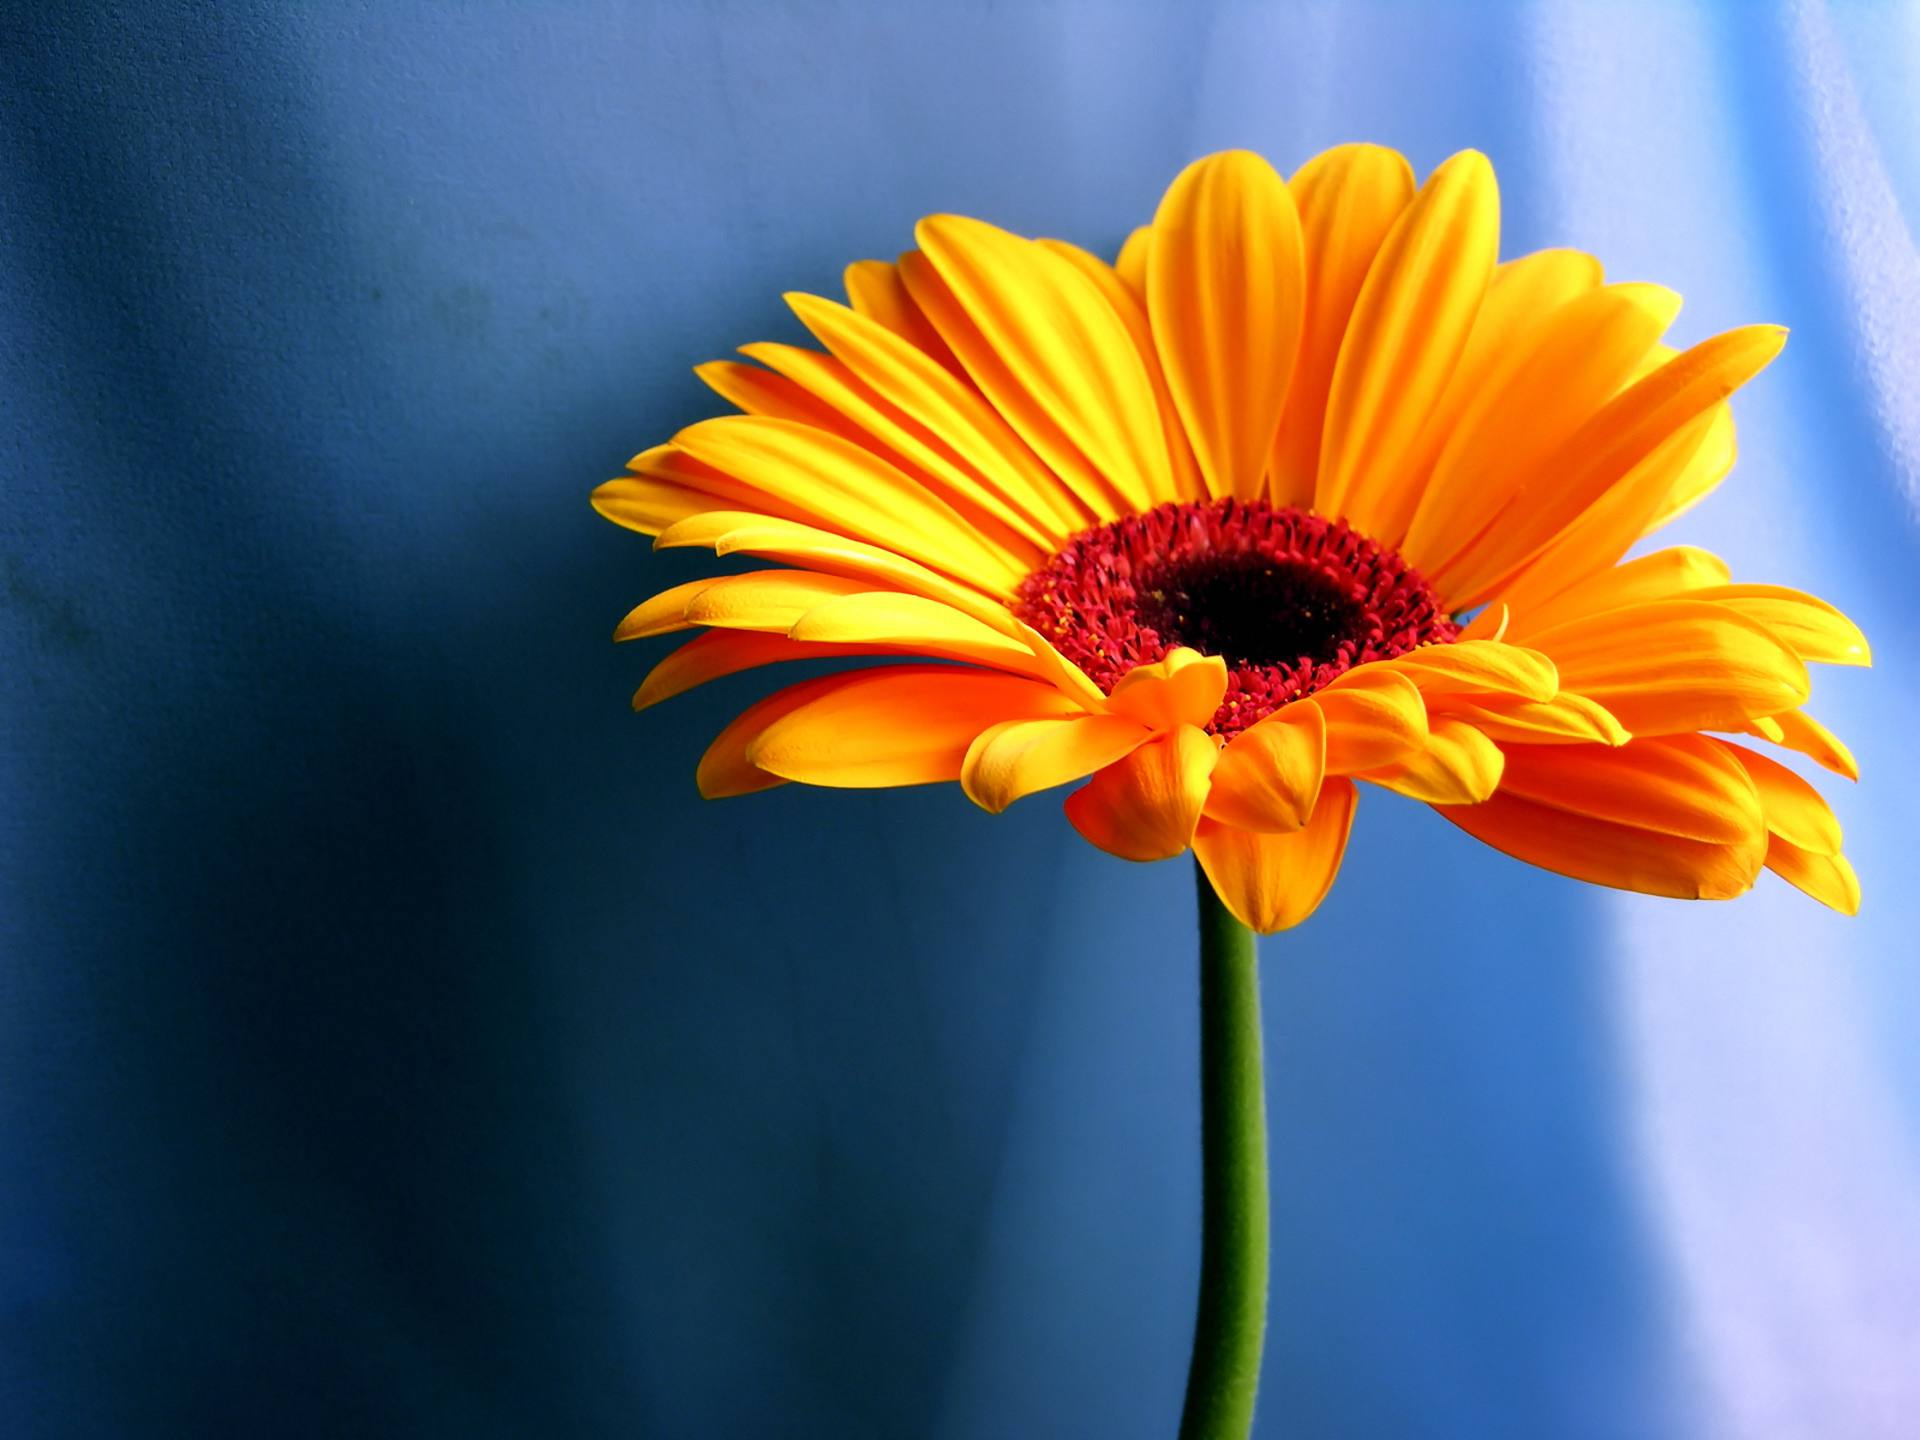 An Orange Flower With A Blue Background